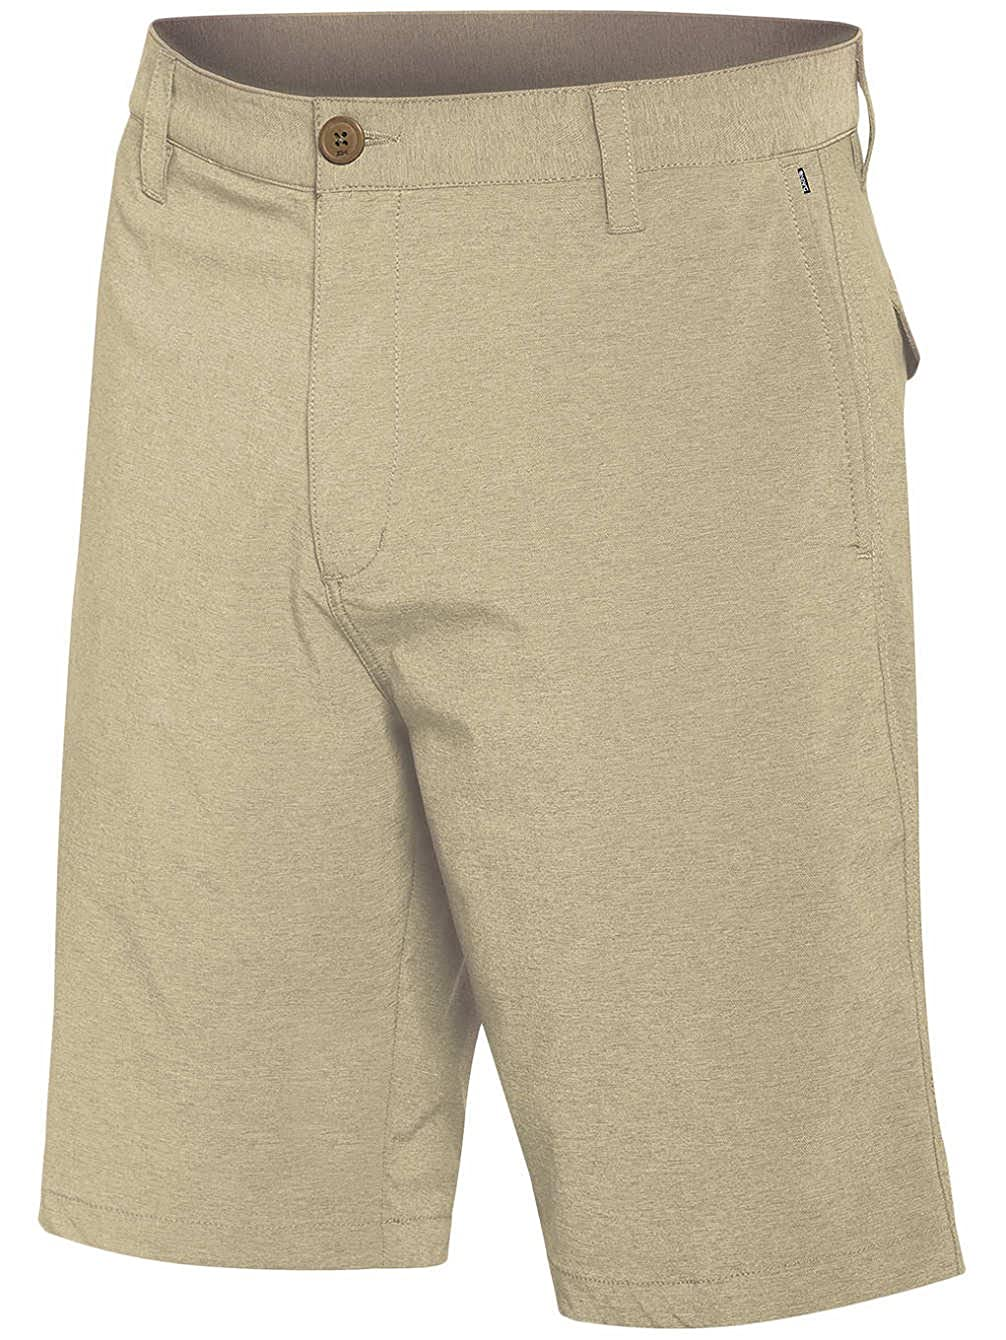 Dakine Beachpark Shorts Mens